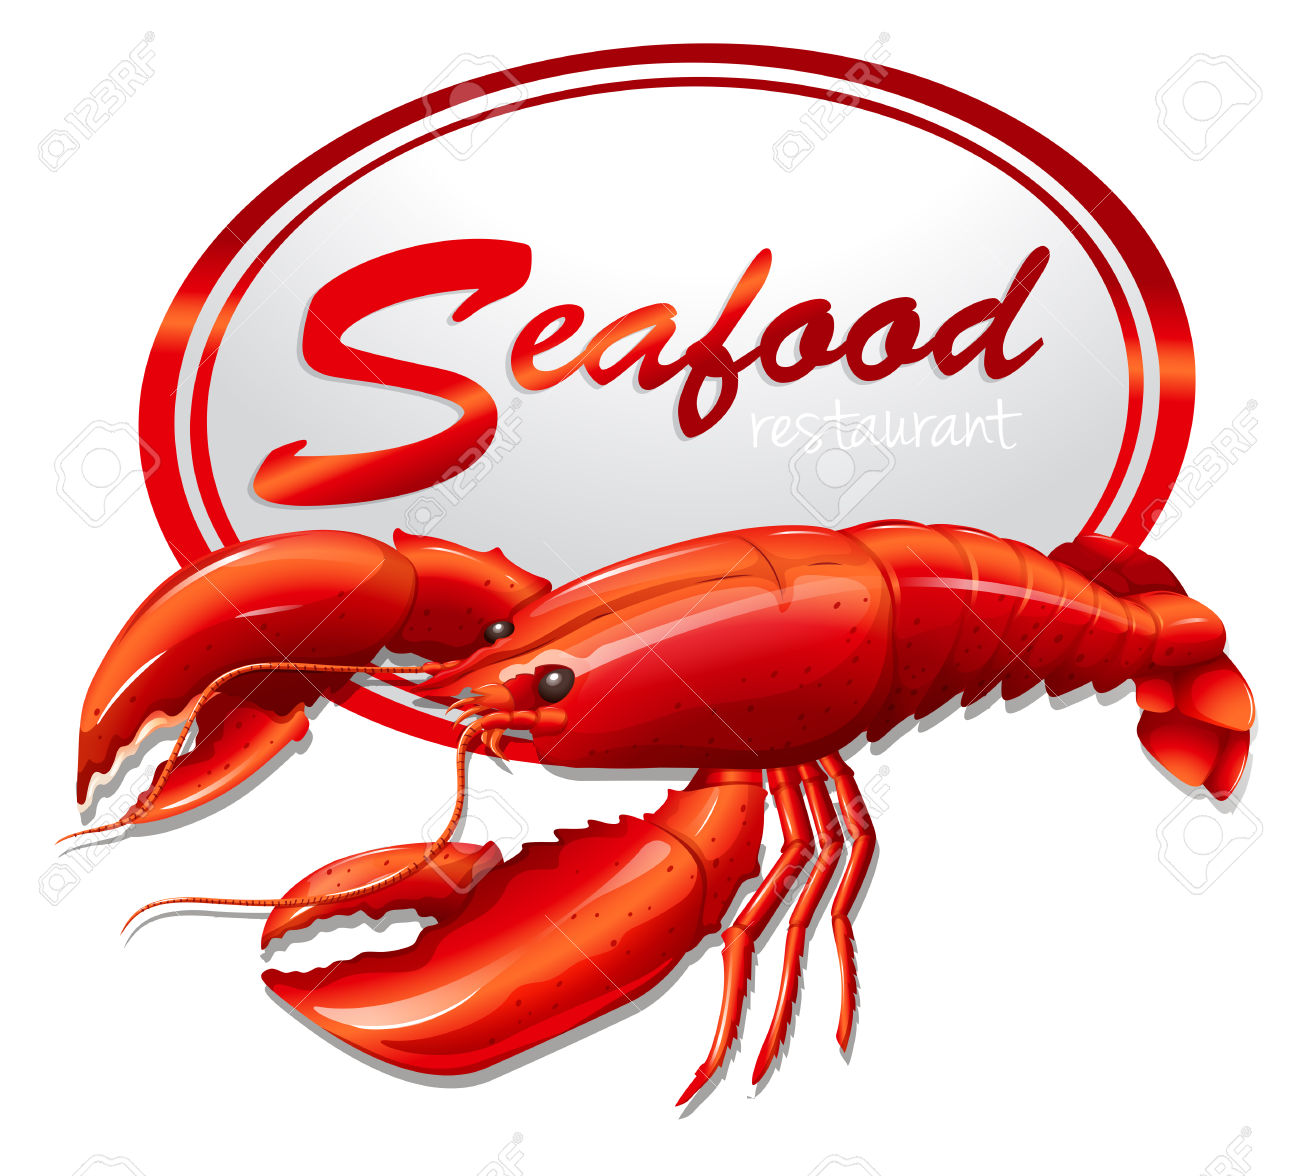 Seafood clipart lobster – Dish Download Lobster Clipart